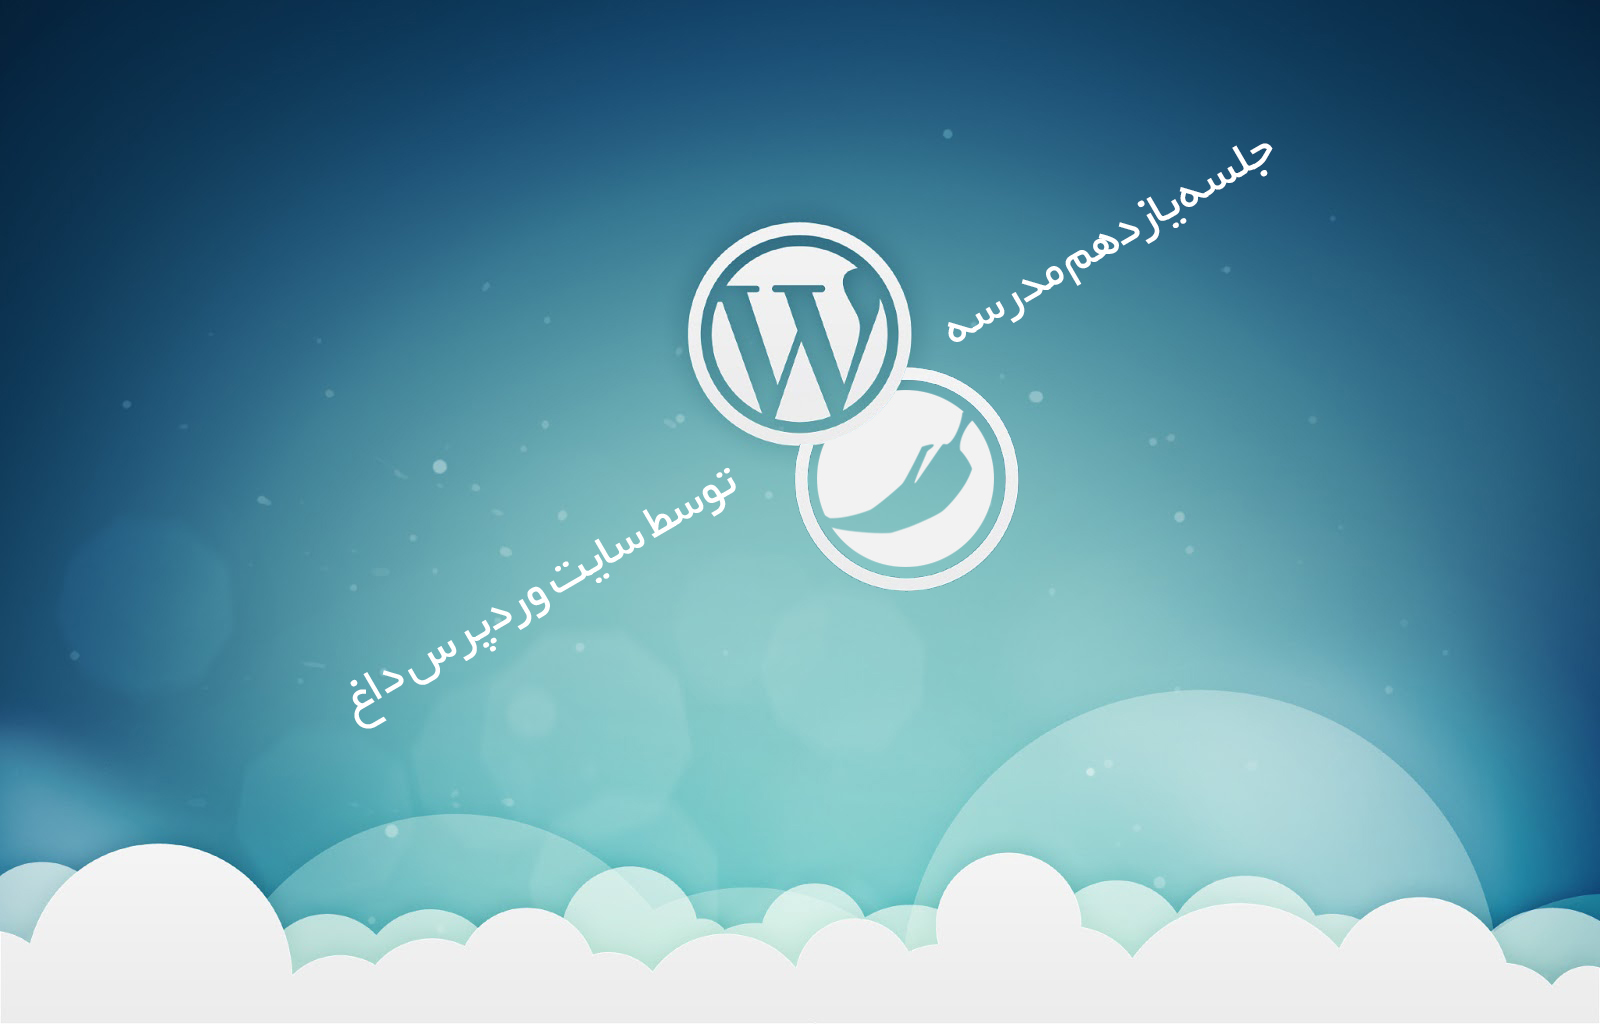 school-wordpress-redwp-11